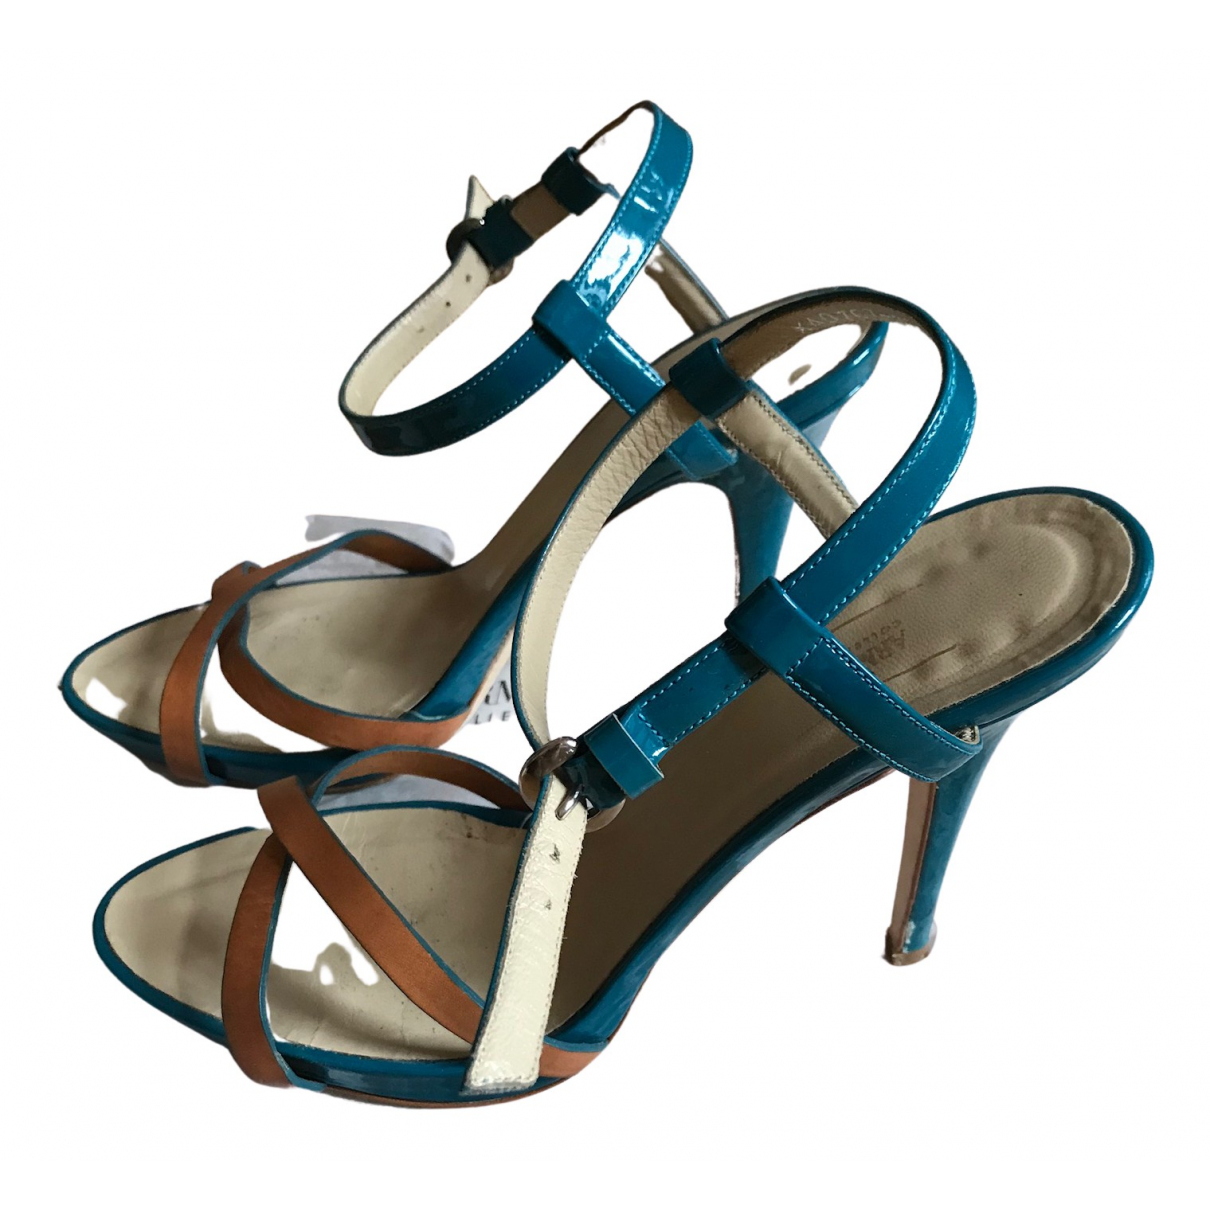 Emporio Armani N Turquoise Patent leather Sandals for Women 38.5 EU